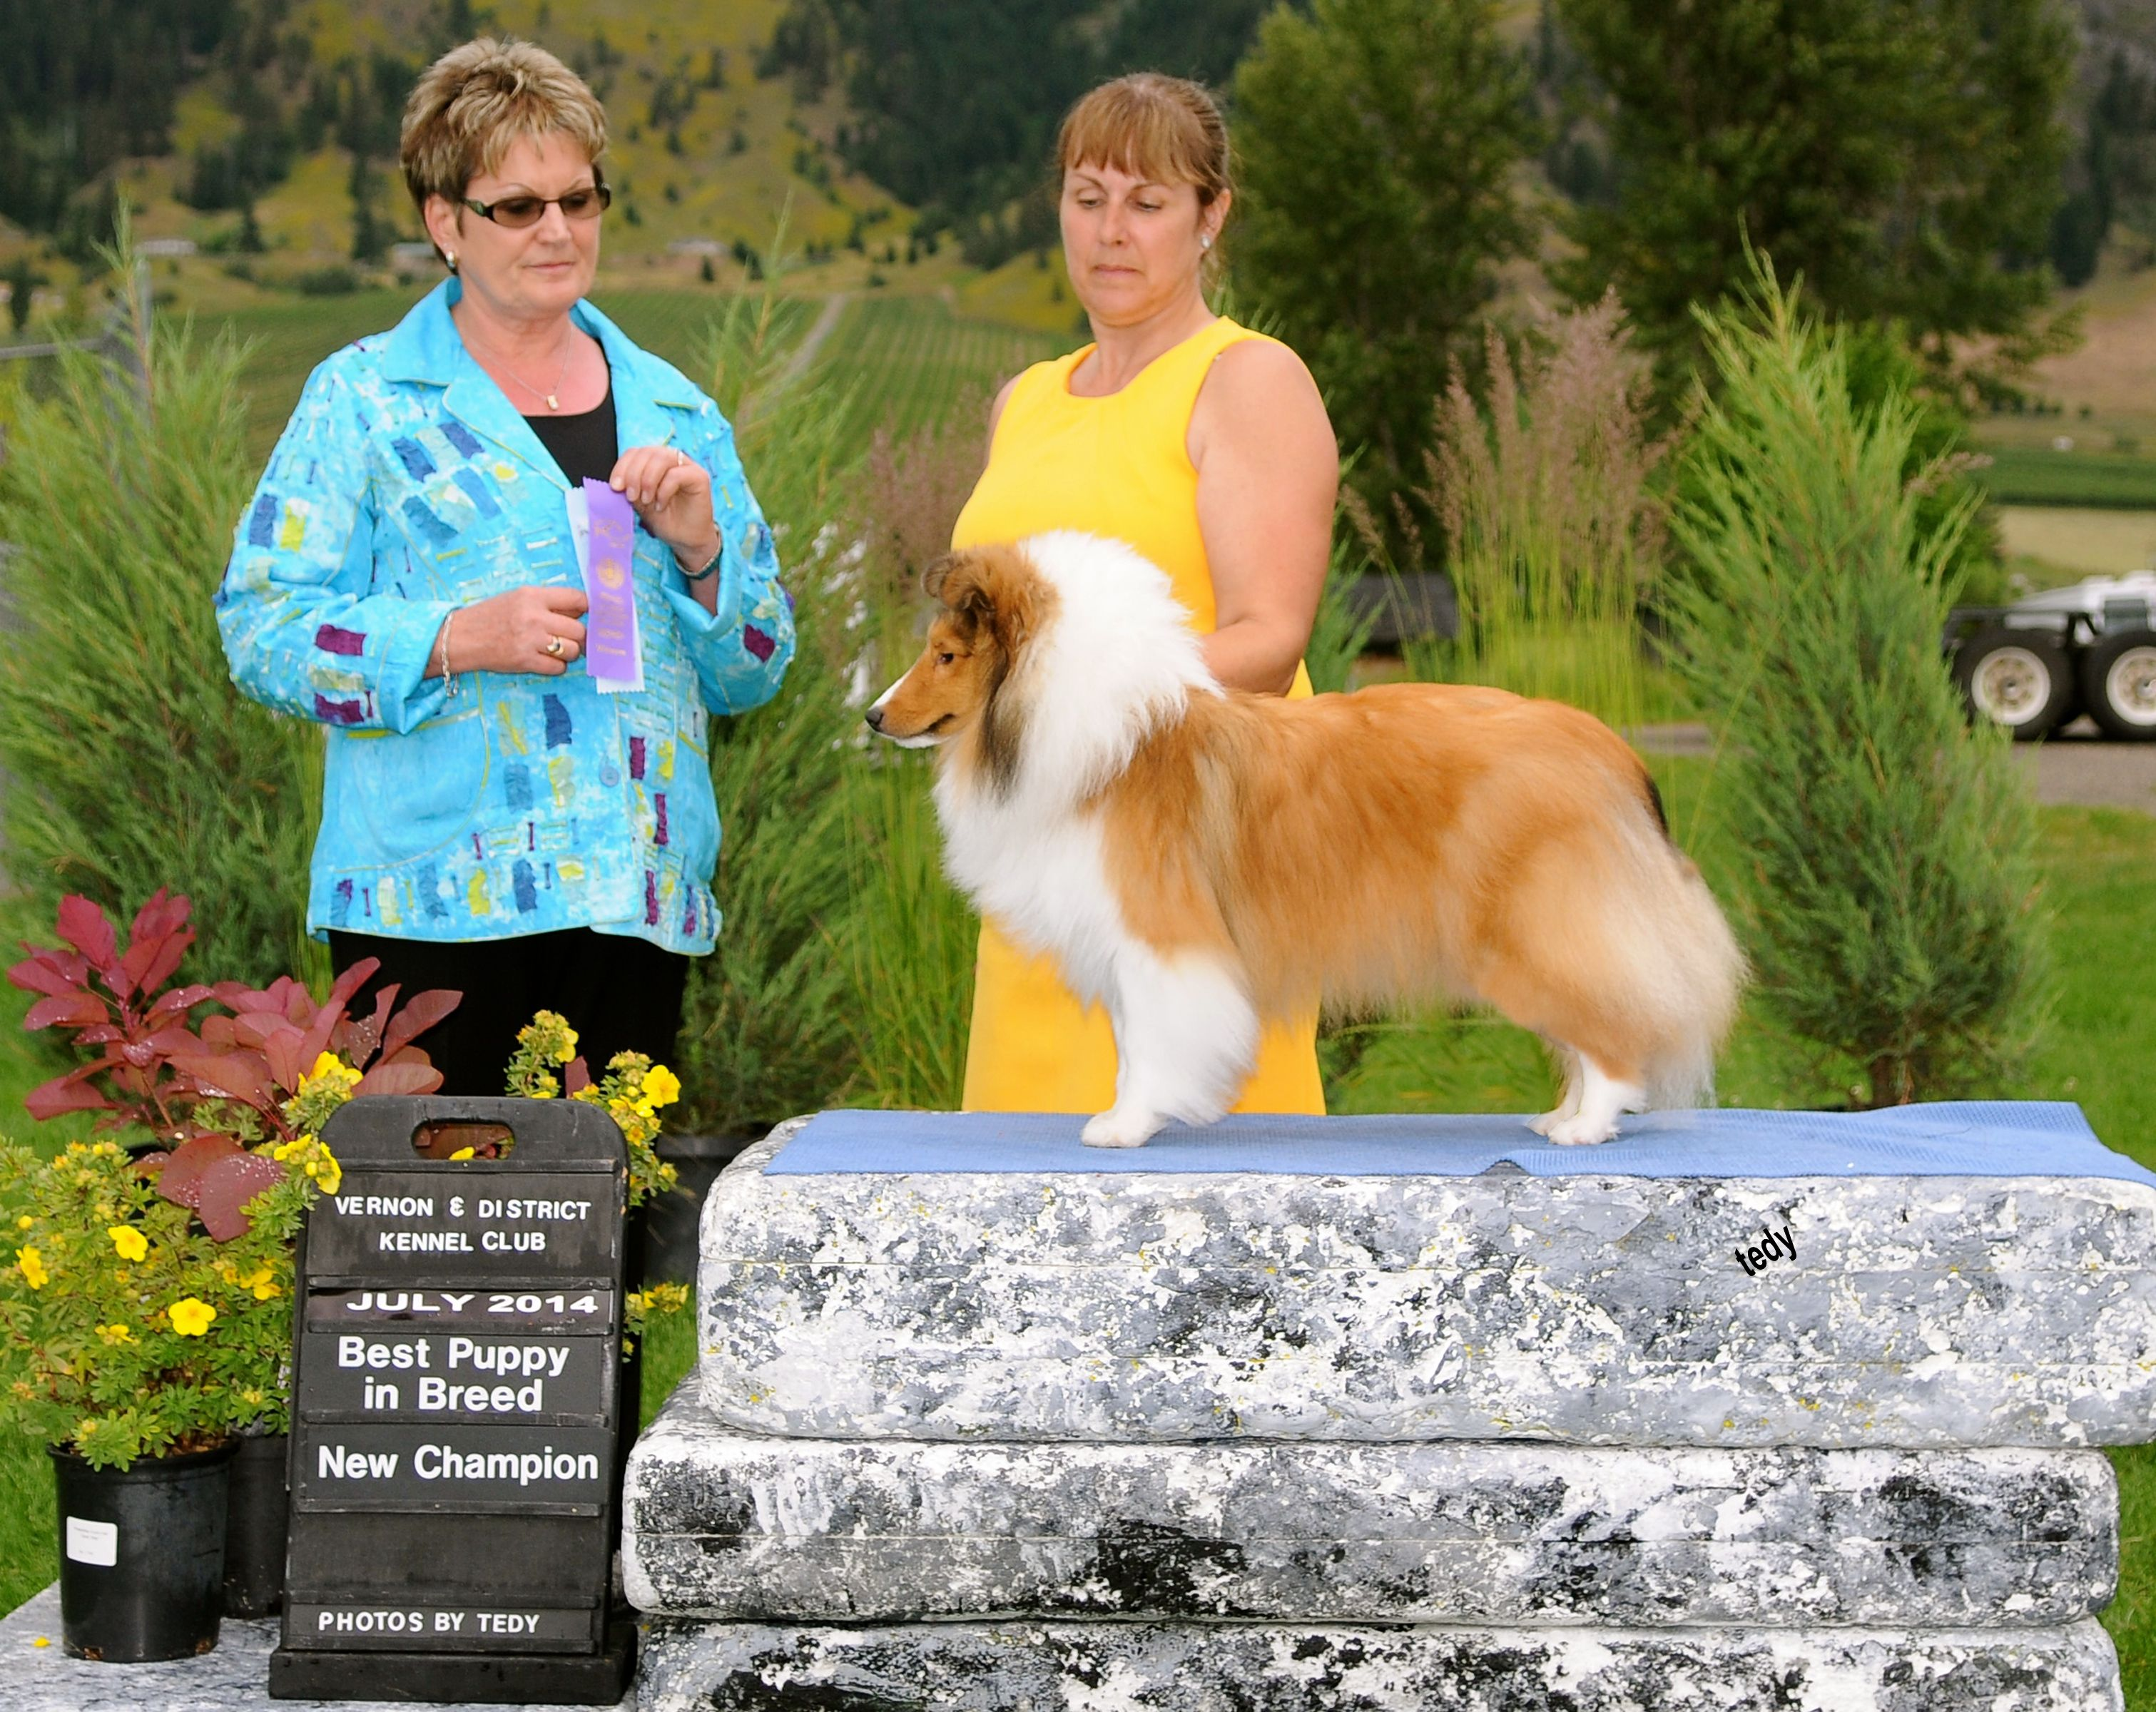 Ch Mbpig Canyonview Lord O The Westwind Rn Sheepdog Breeds